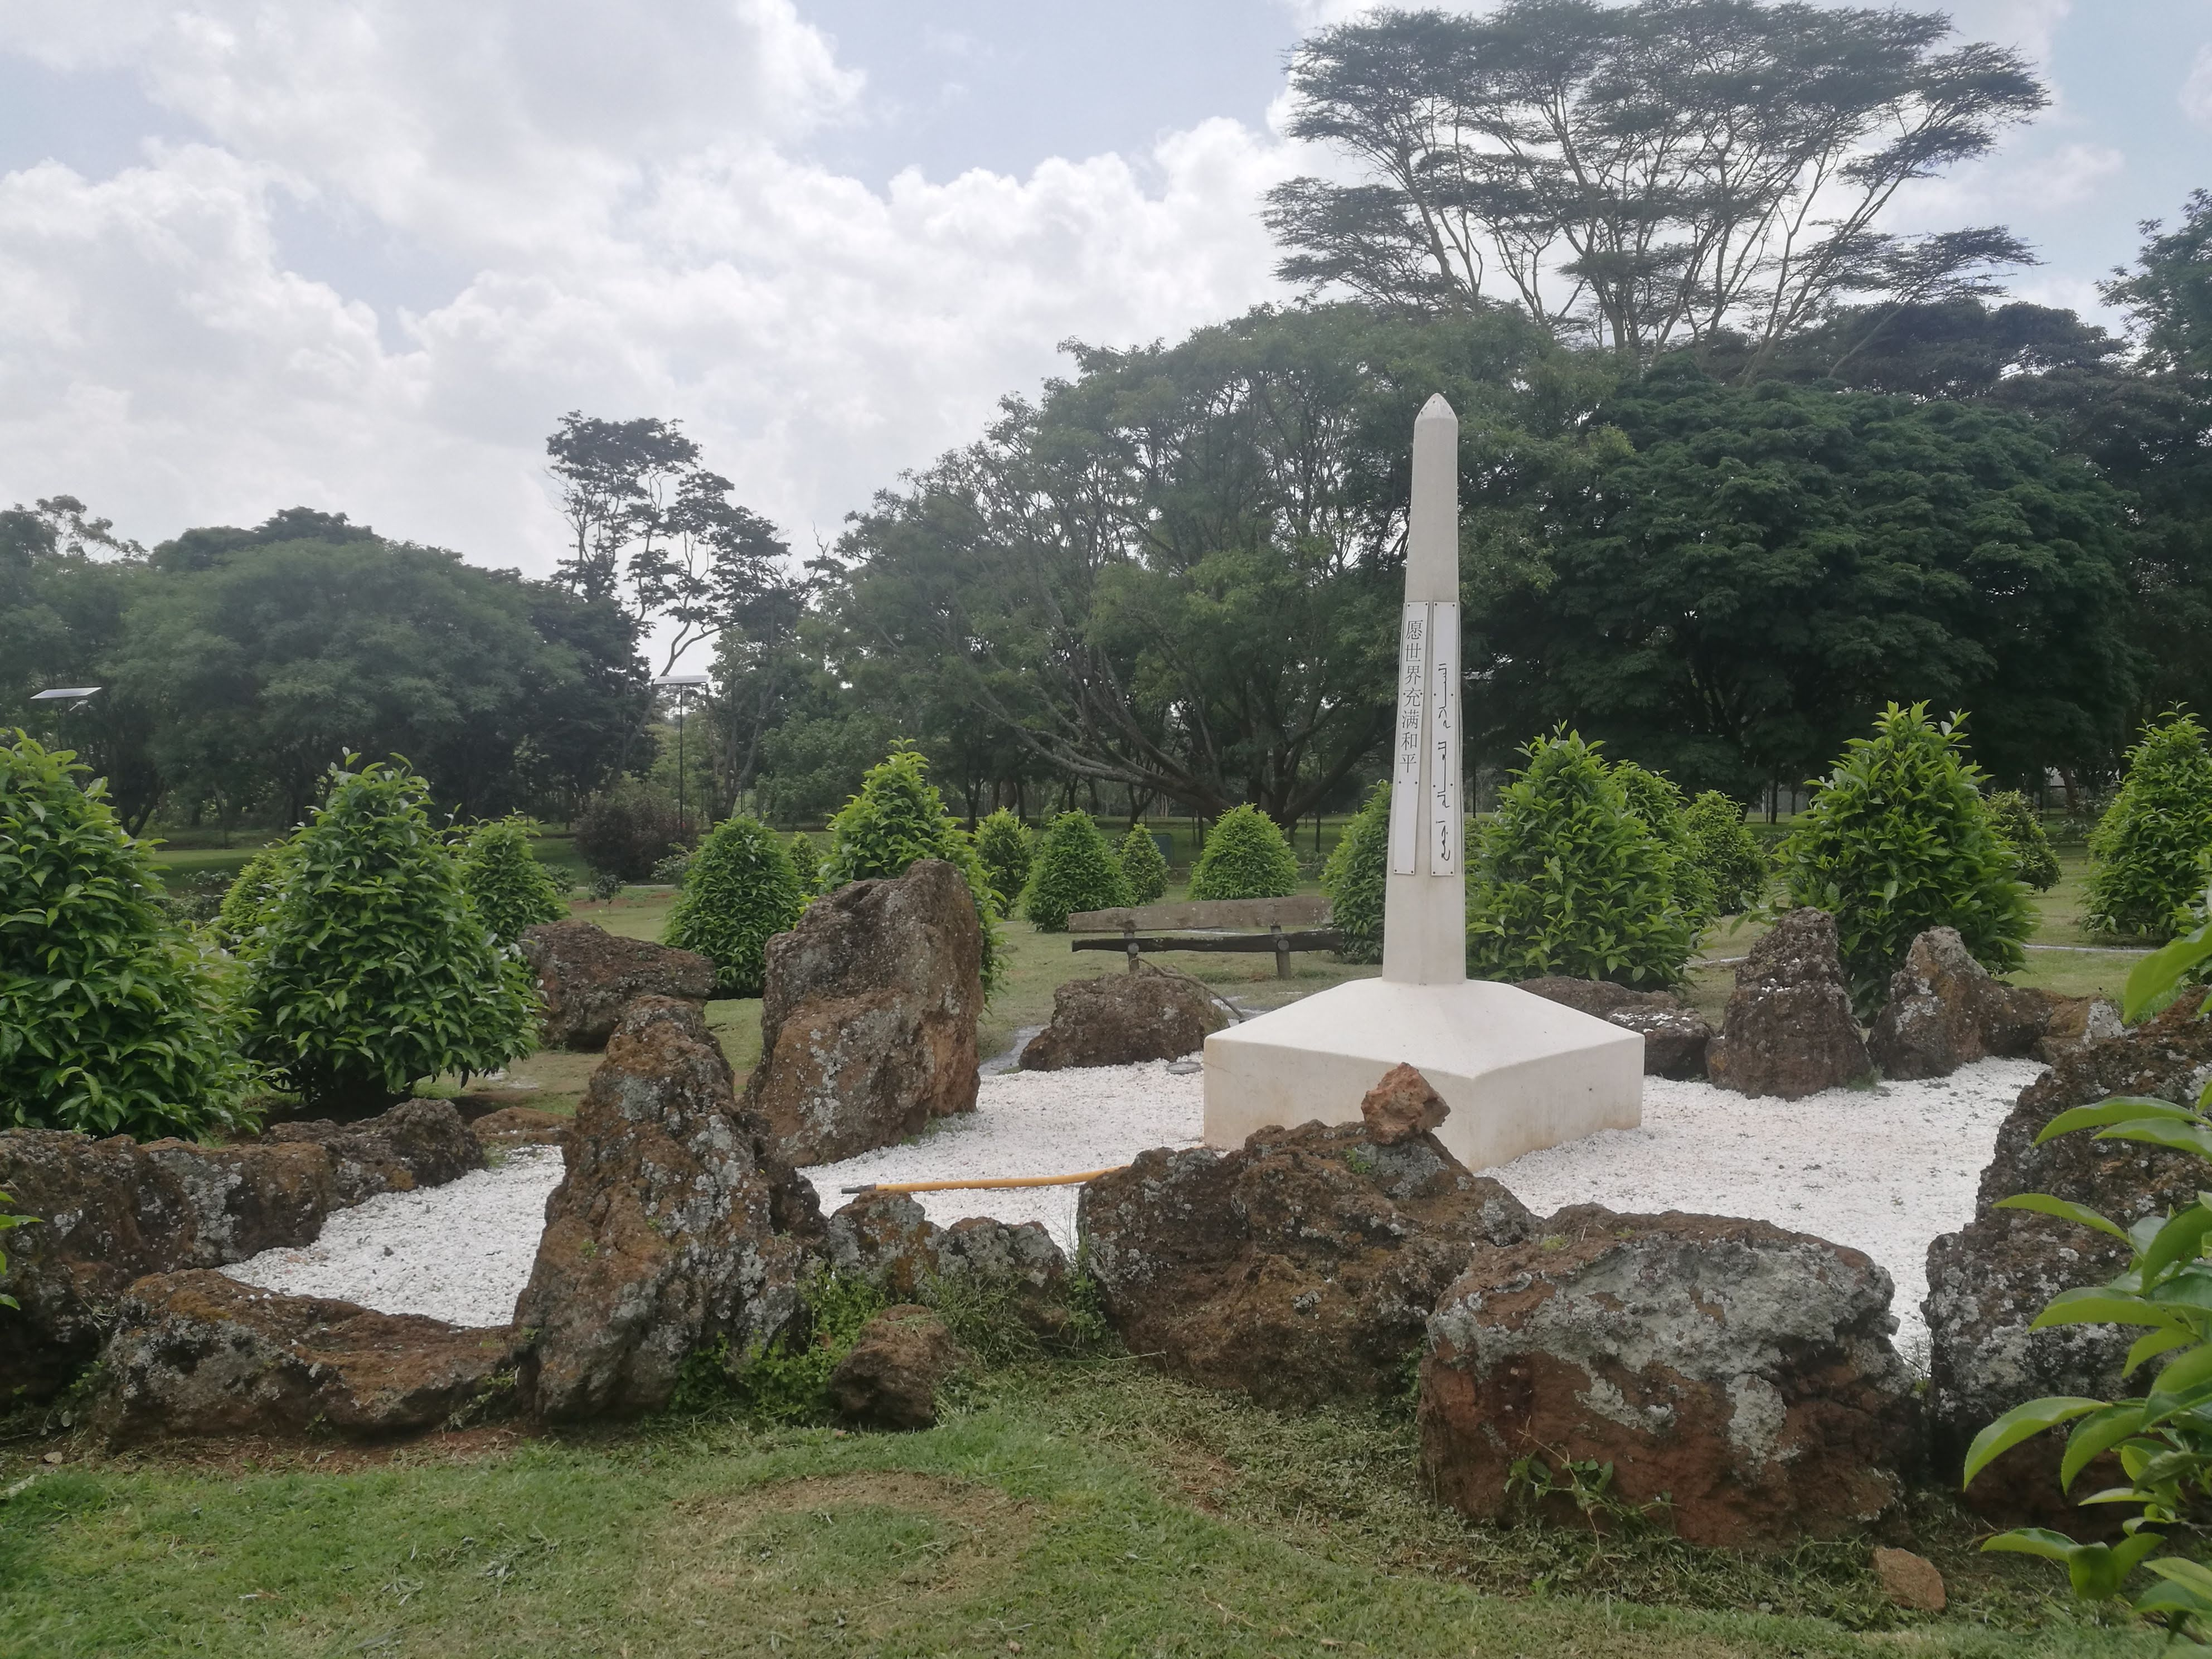 Monument of Peace, in the six official languages of the United Nations- Arabic, Chinese, English, French, Russian and Spanish ©G.Paradiso/Kenya